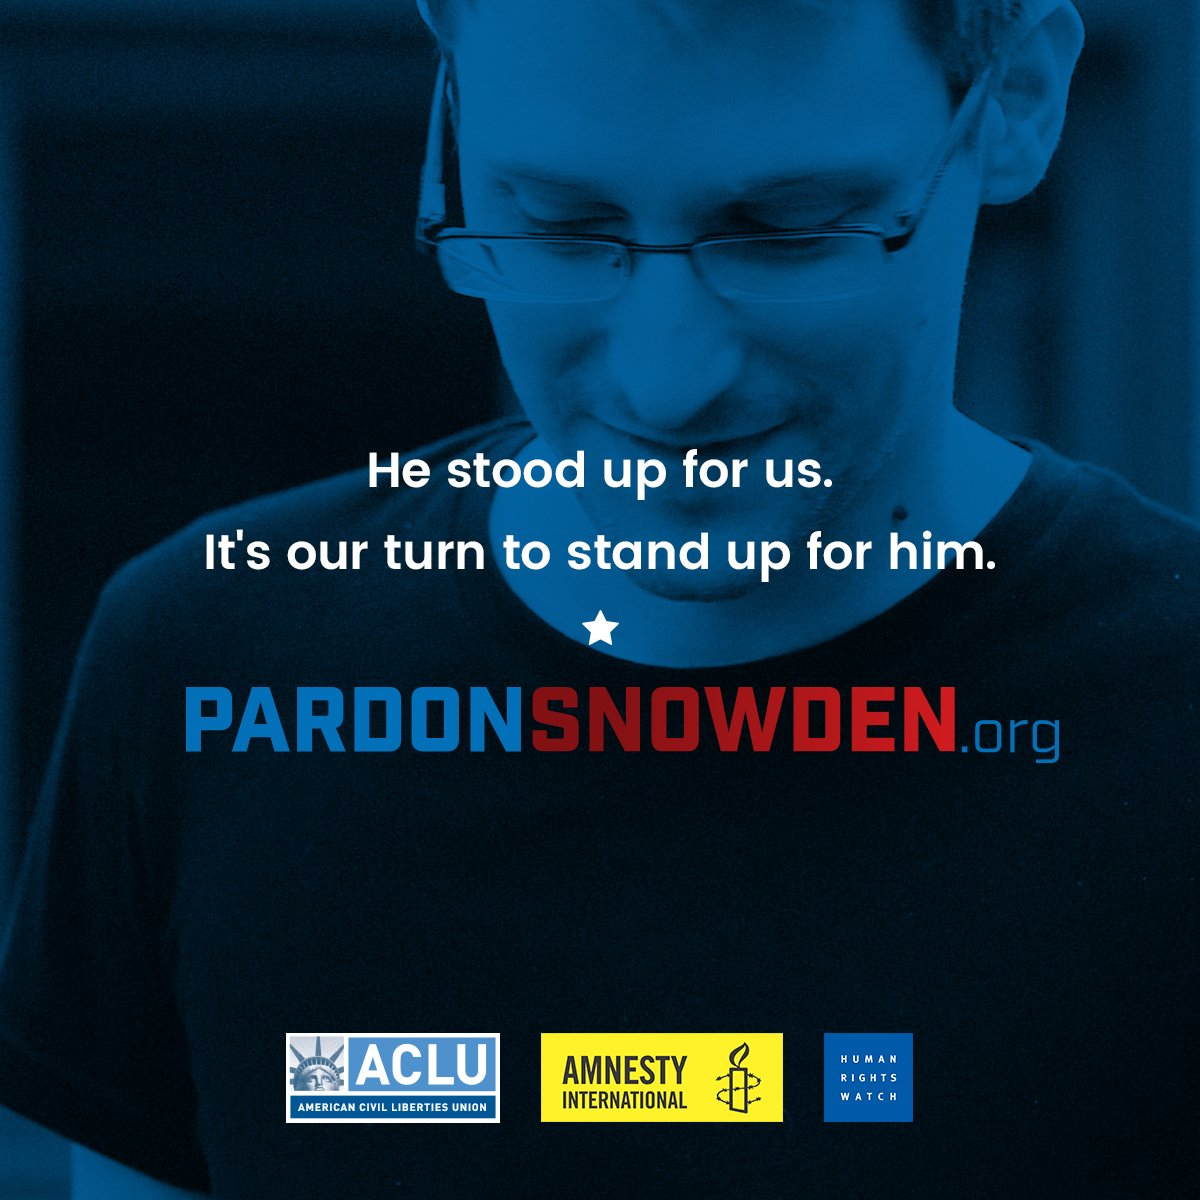 3 years ago he warned public of massive gov surveillance, time for Obama to #PardonSnowden https://t.co/BuMjcDZaJE